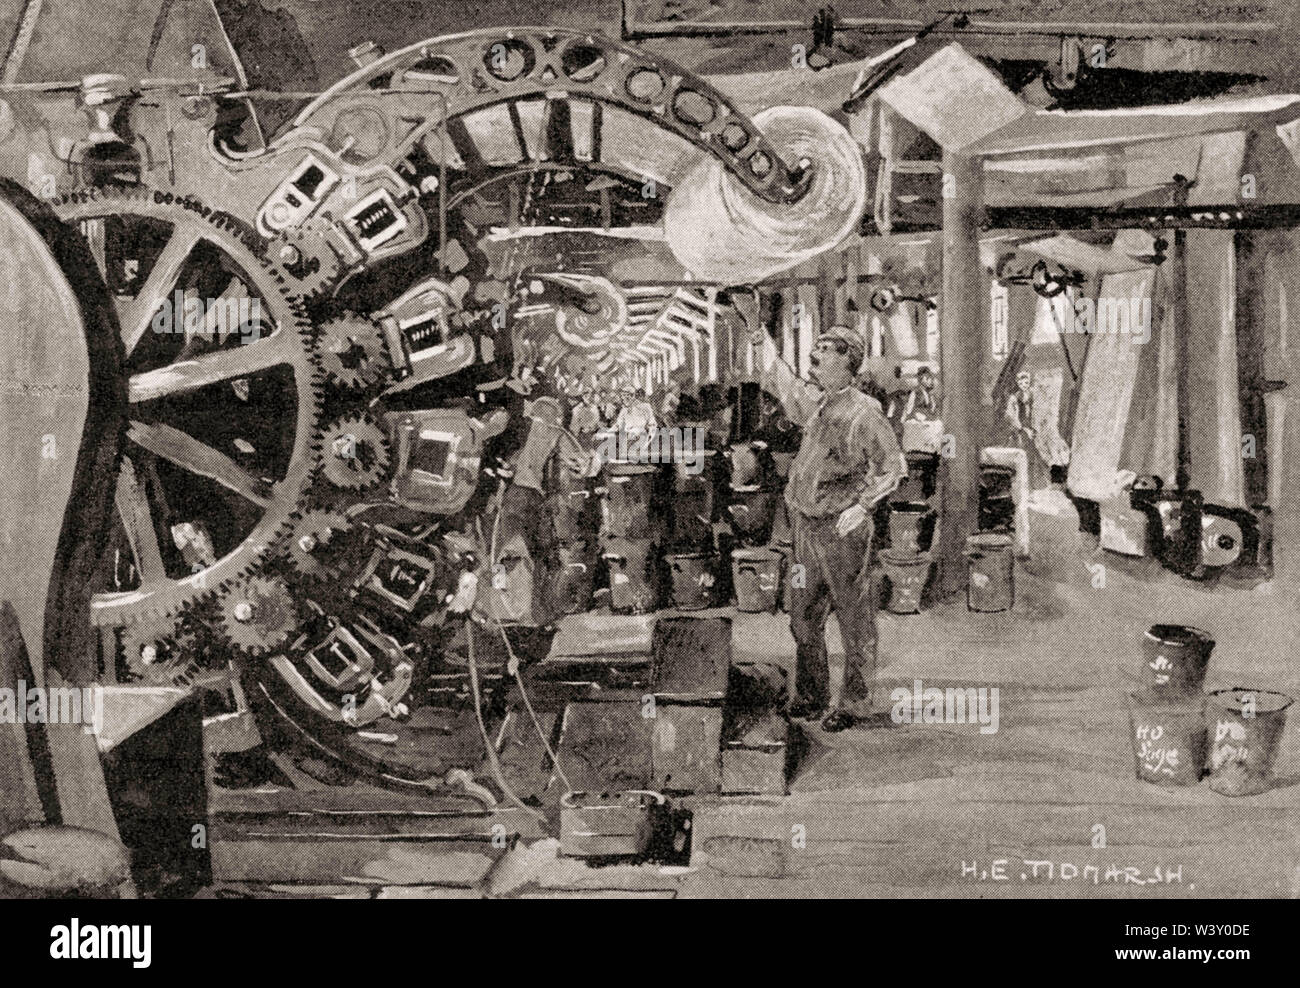 Calico Printers' Association Ltd, cotton industry, Manchester, England, UK, 19th century - Stock Image